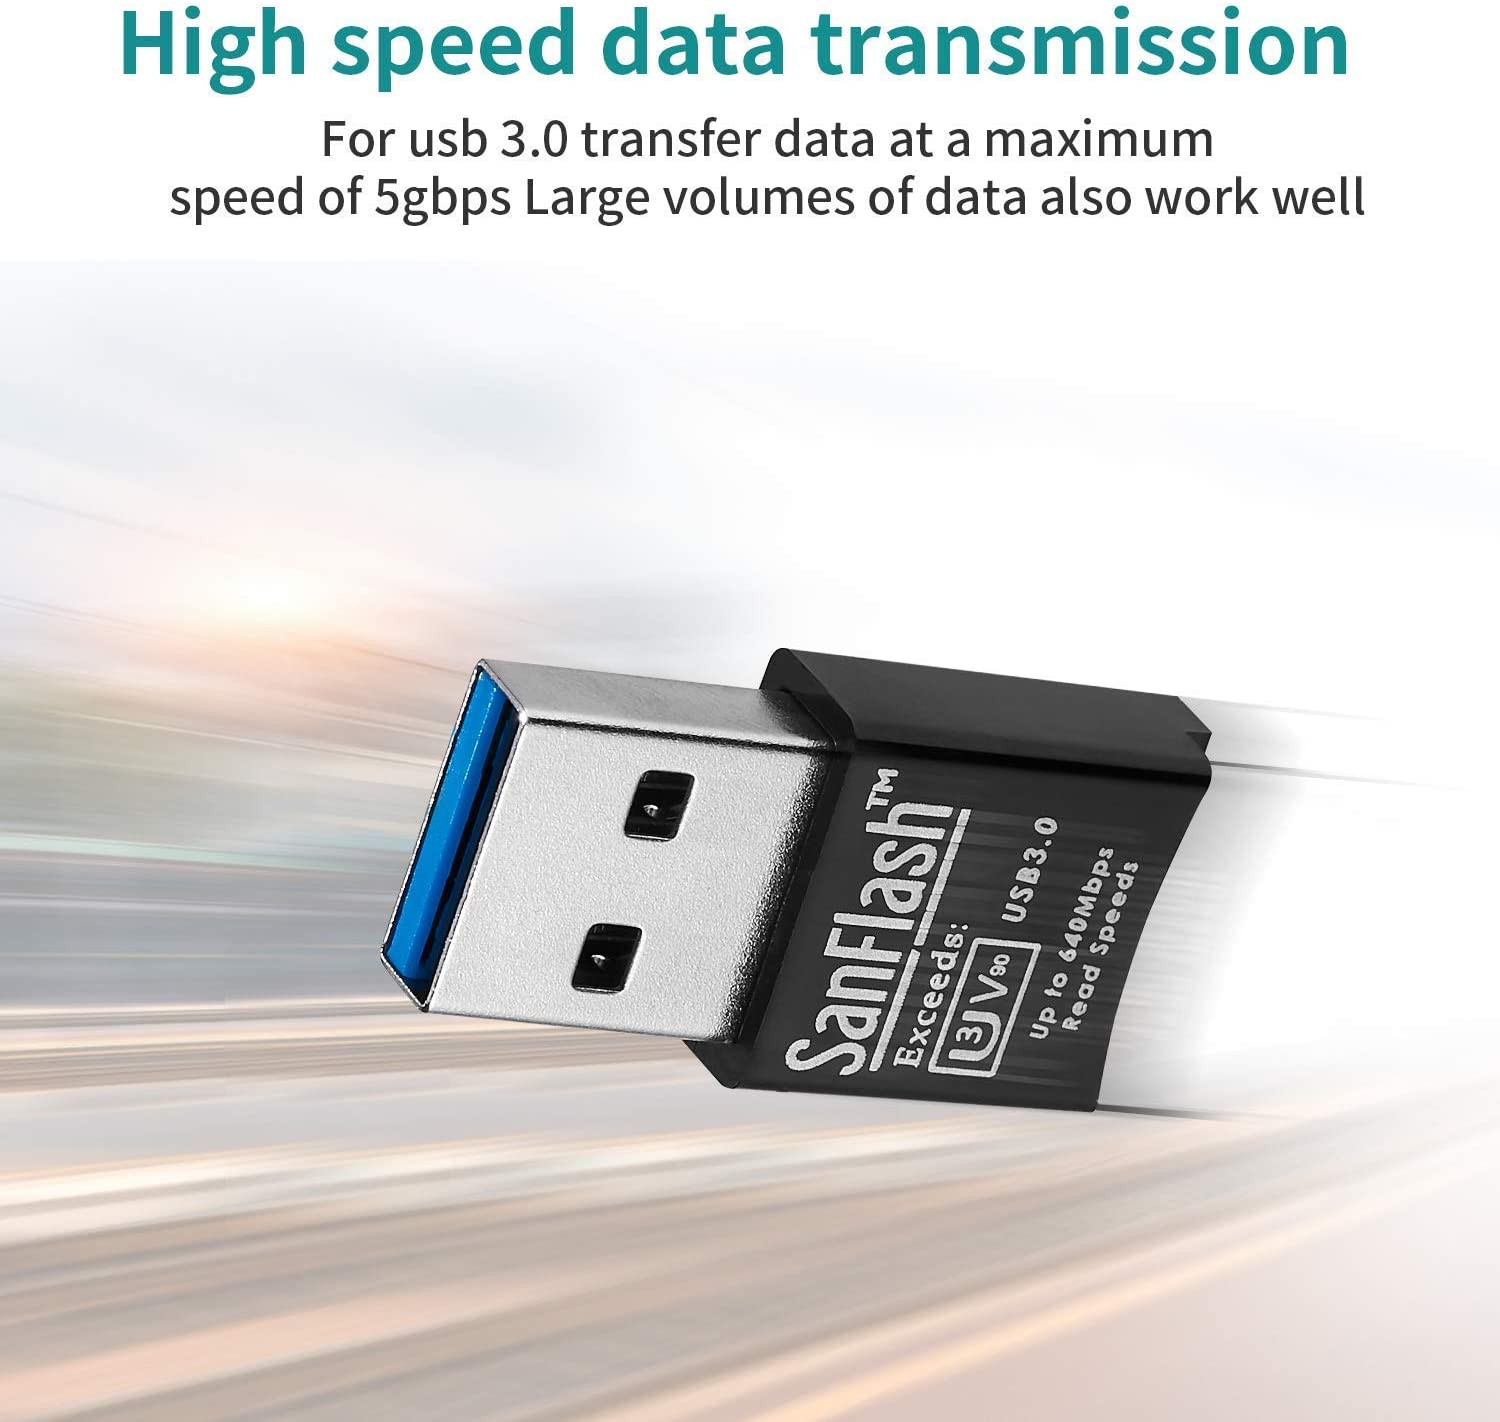 SanFlash PRO USB 3.0 Card Reader Works for Sony Xperia Z4v Adapter to Directly Read at 5Gbps Your MicroSDHC MicroSDXC Cards